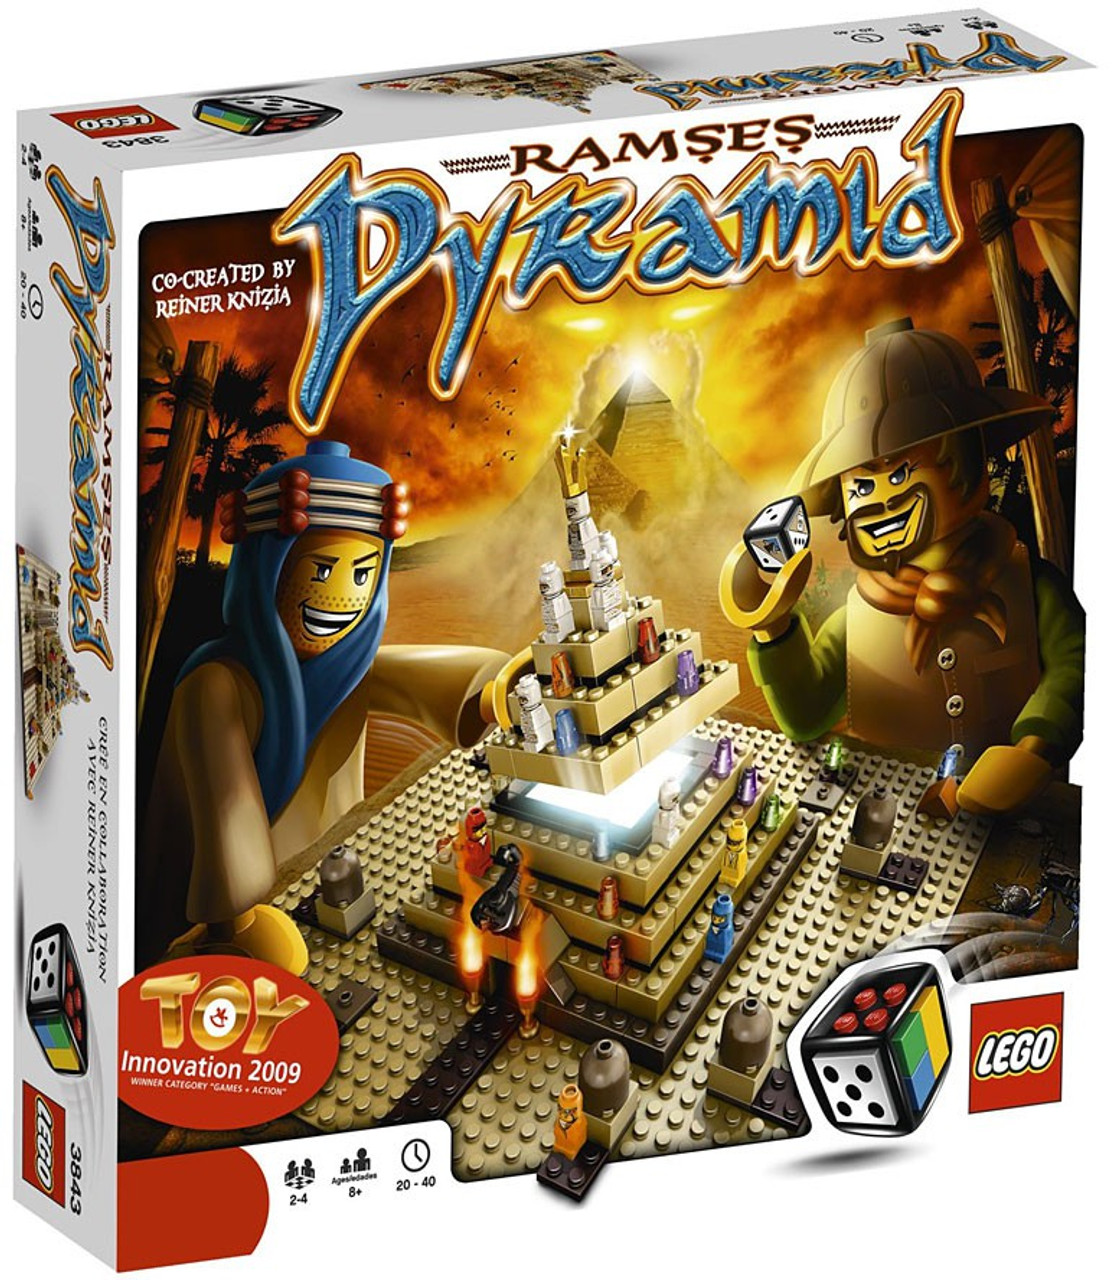 LEGO Games Ramses Pyramid Board Game #3843